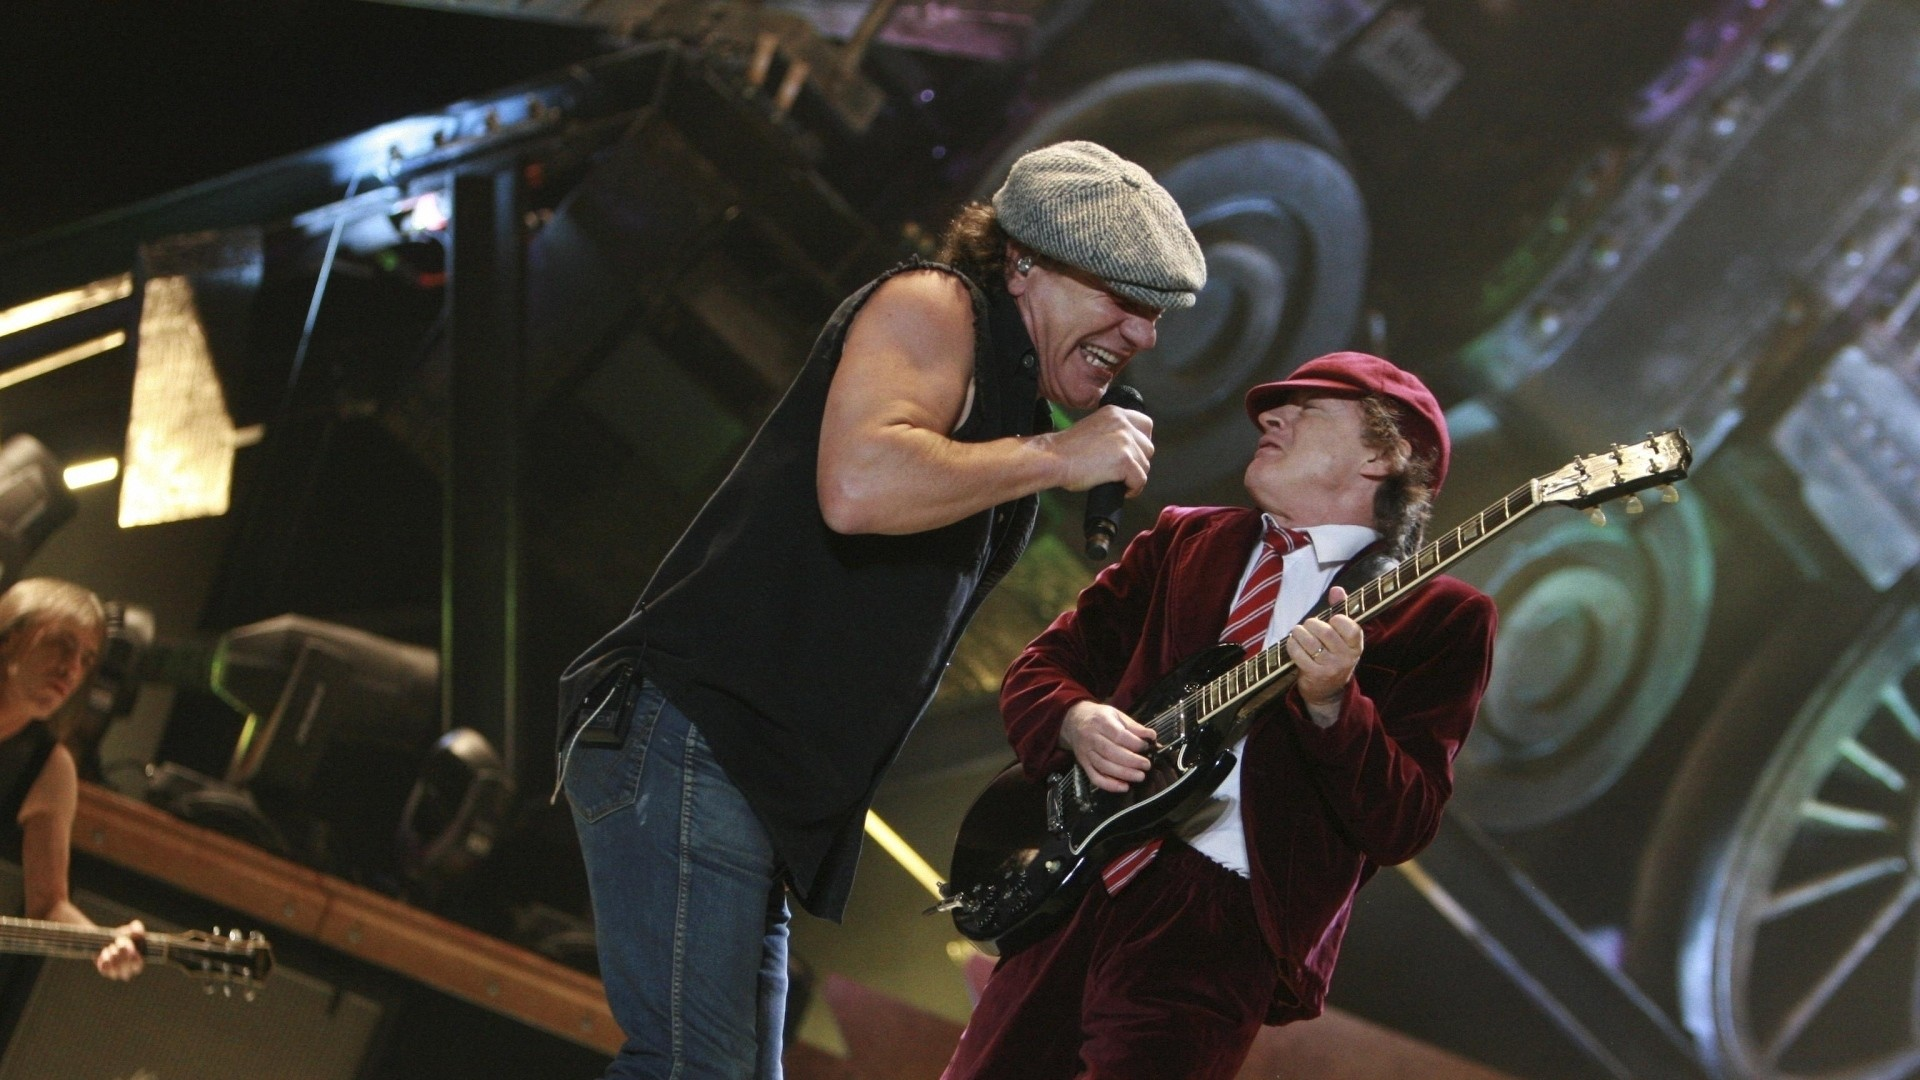 Wallpaper acdc, group, scene, solo, guitar-player